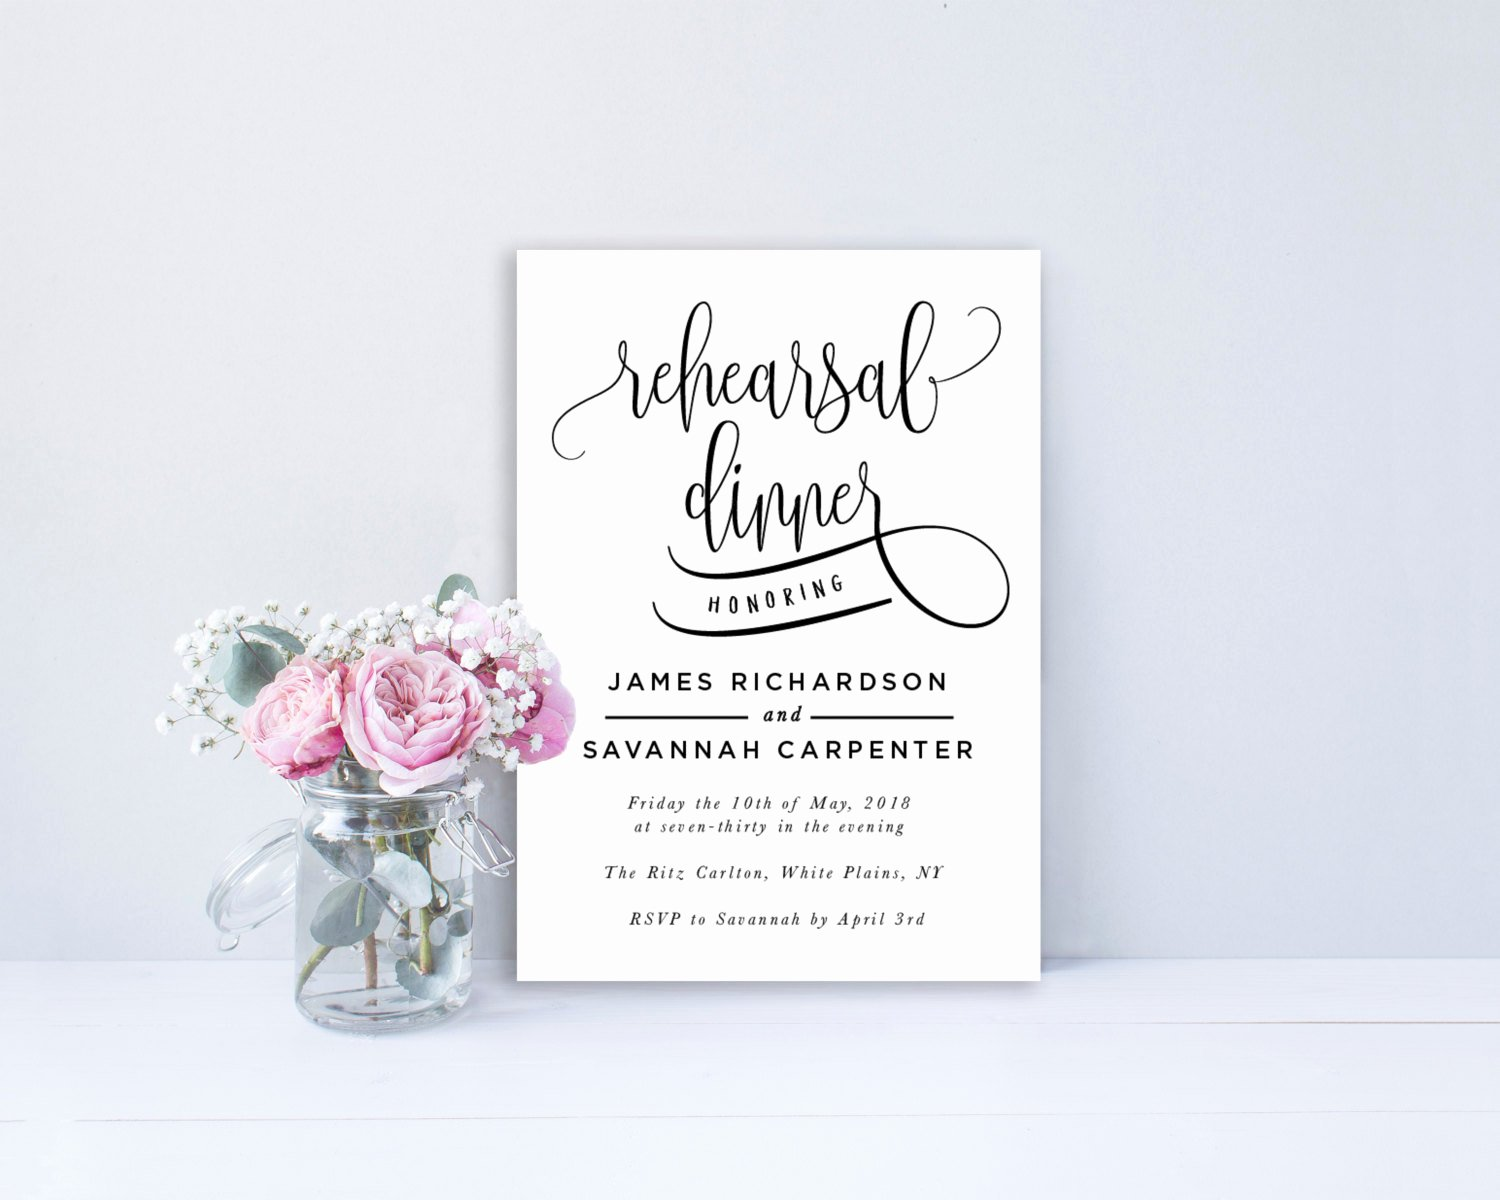 Rehearsal Dinner Invitation Template Word Fresh Rehearsal Dinner Invitation Template Editable Invitation